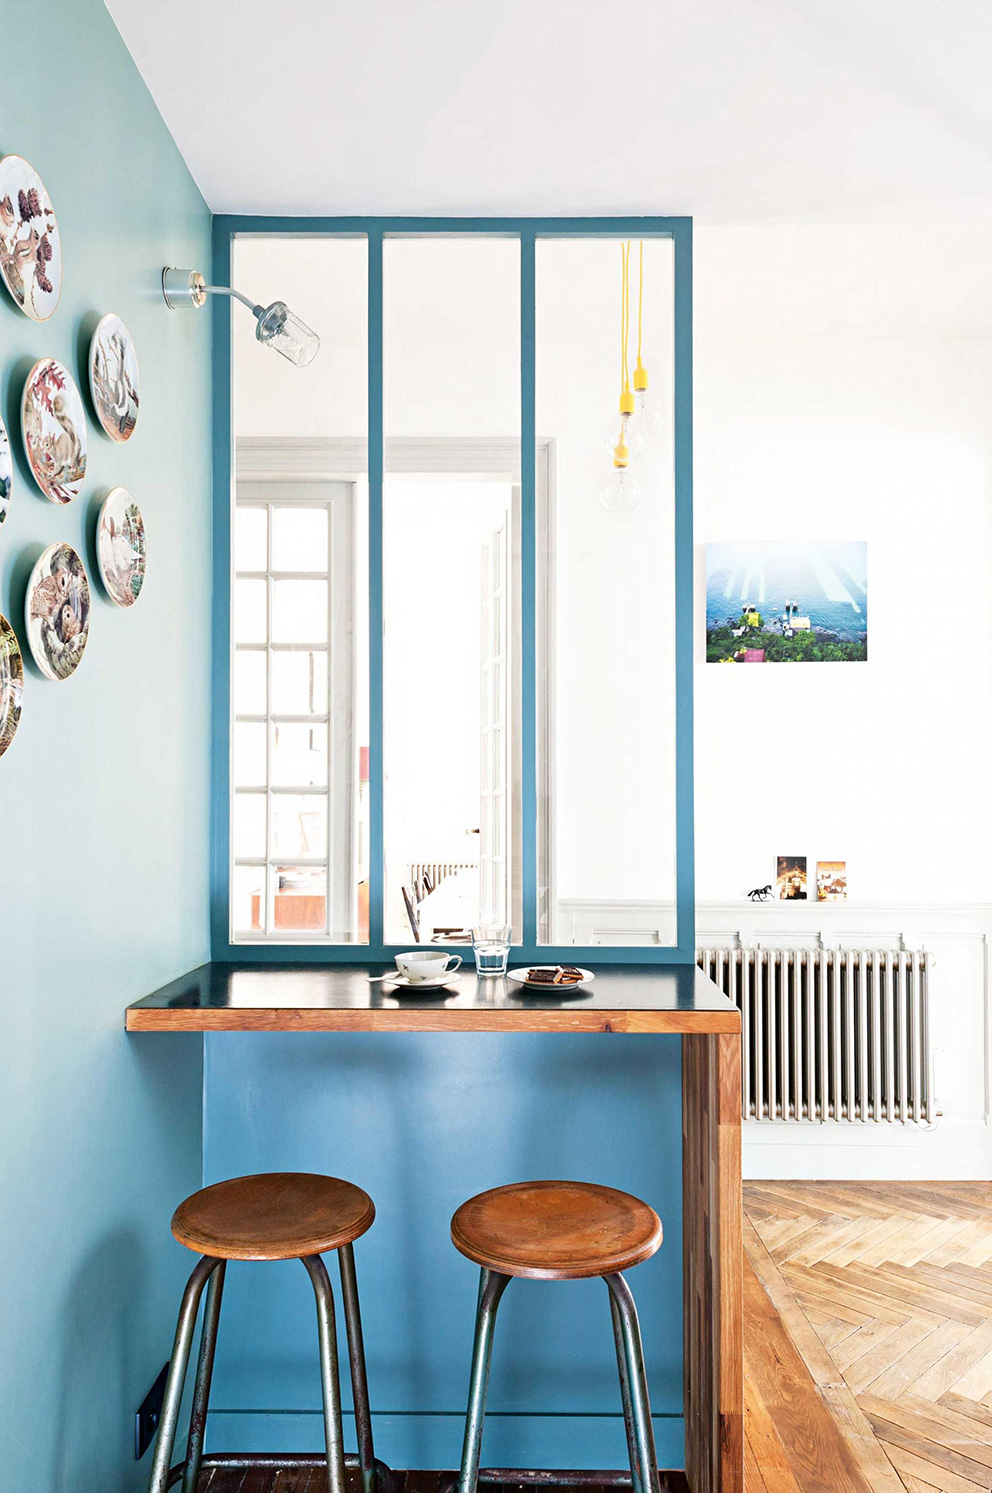 french-apartment-blue-kitchen-barstools